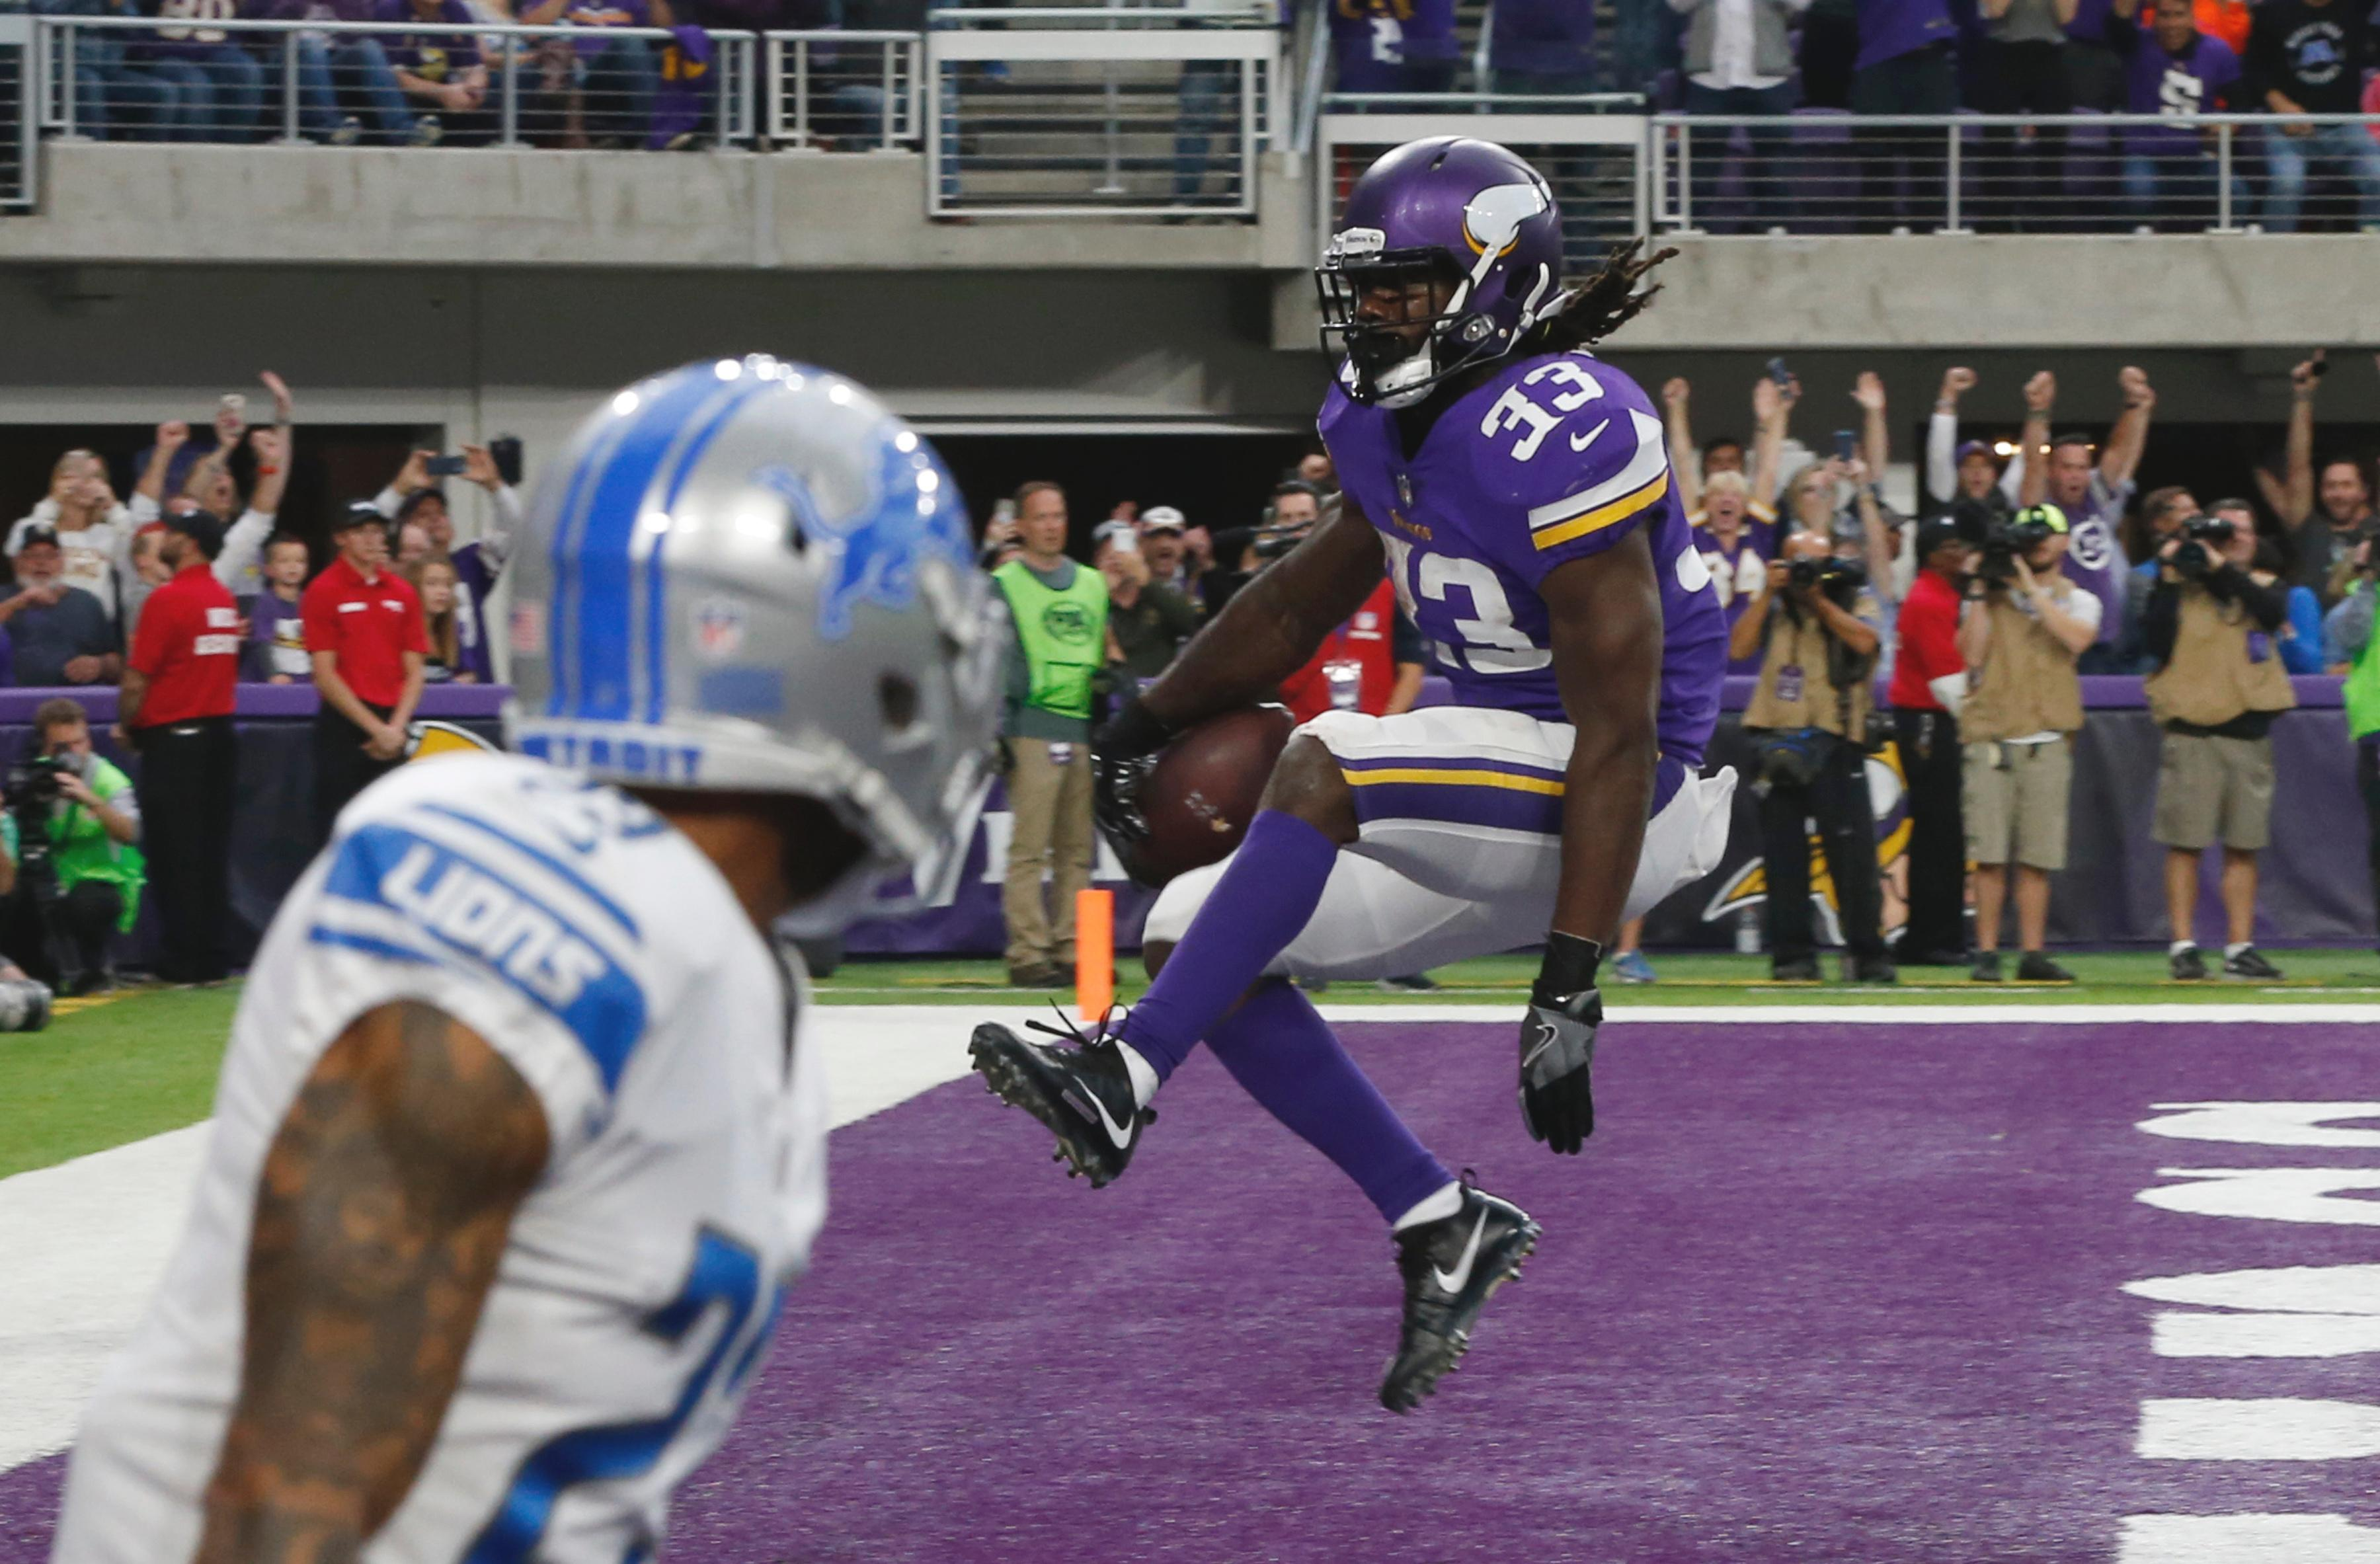 Vikings Dalvin Cook Making Strong Offseason Comeback In